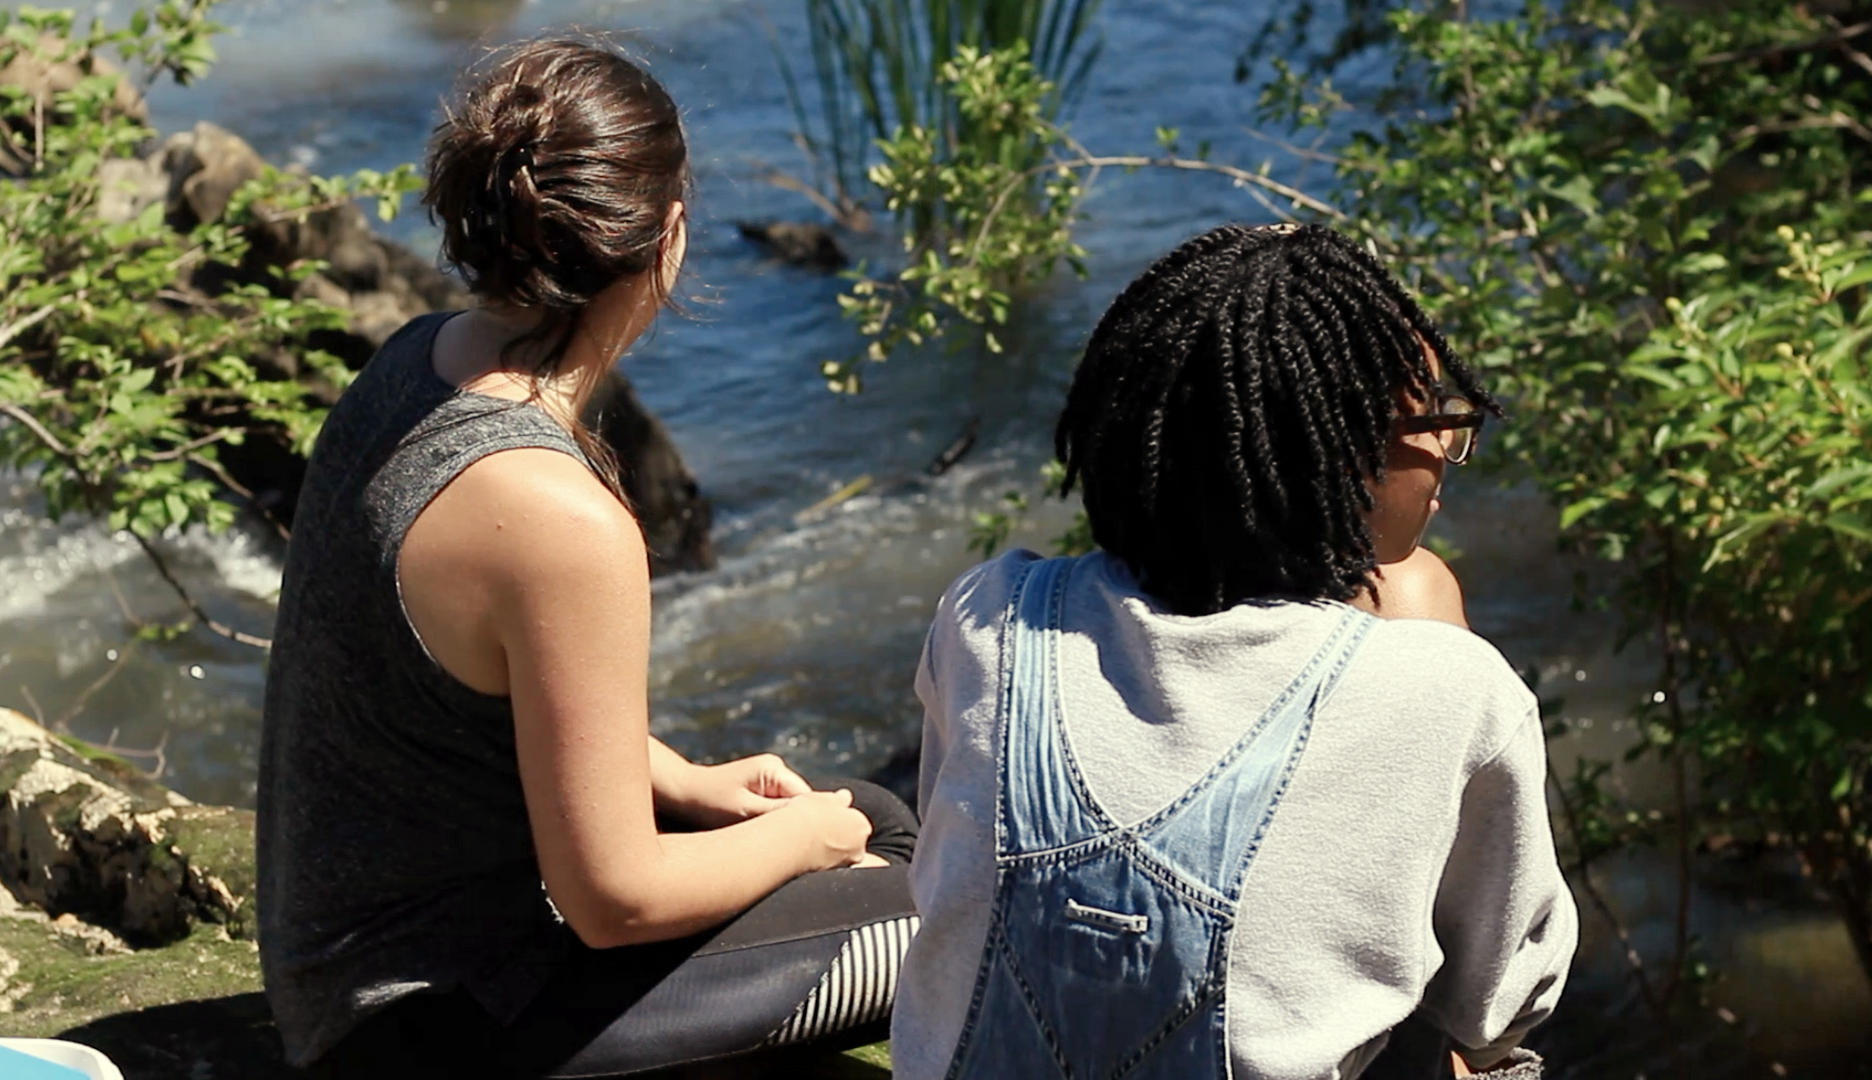 Geology professor Holly Peterson and Blue Mind student during class on the Haw River